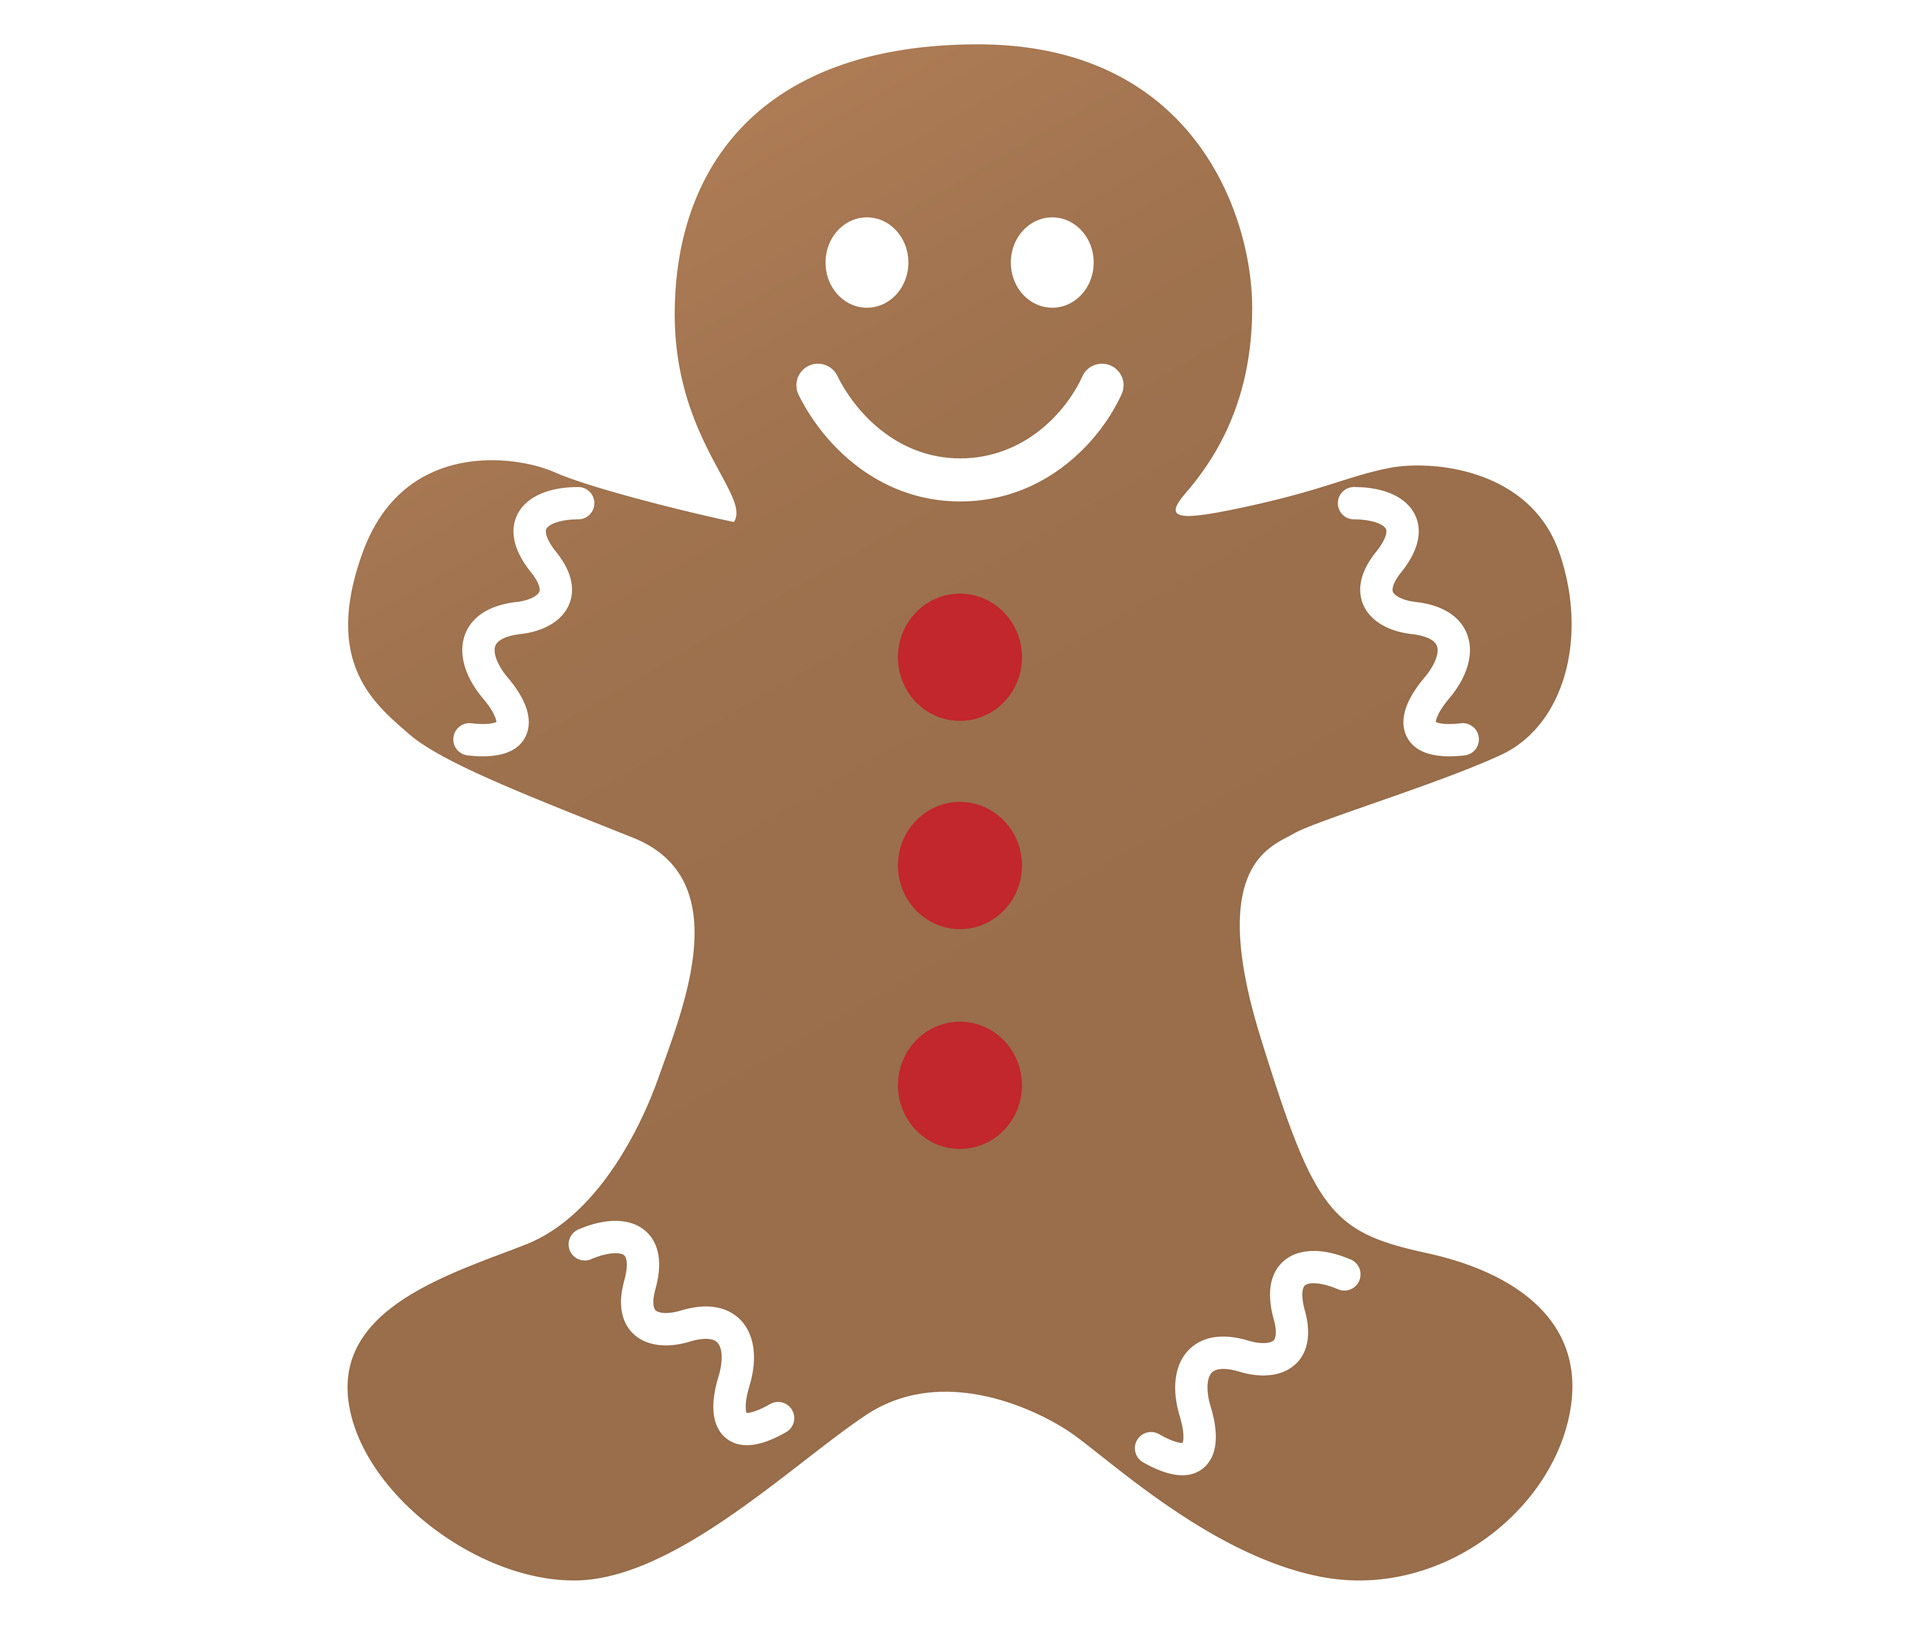 clipart freeuse library Free man cliparts download. Gingerbread clipart.